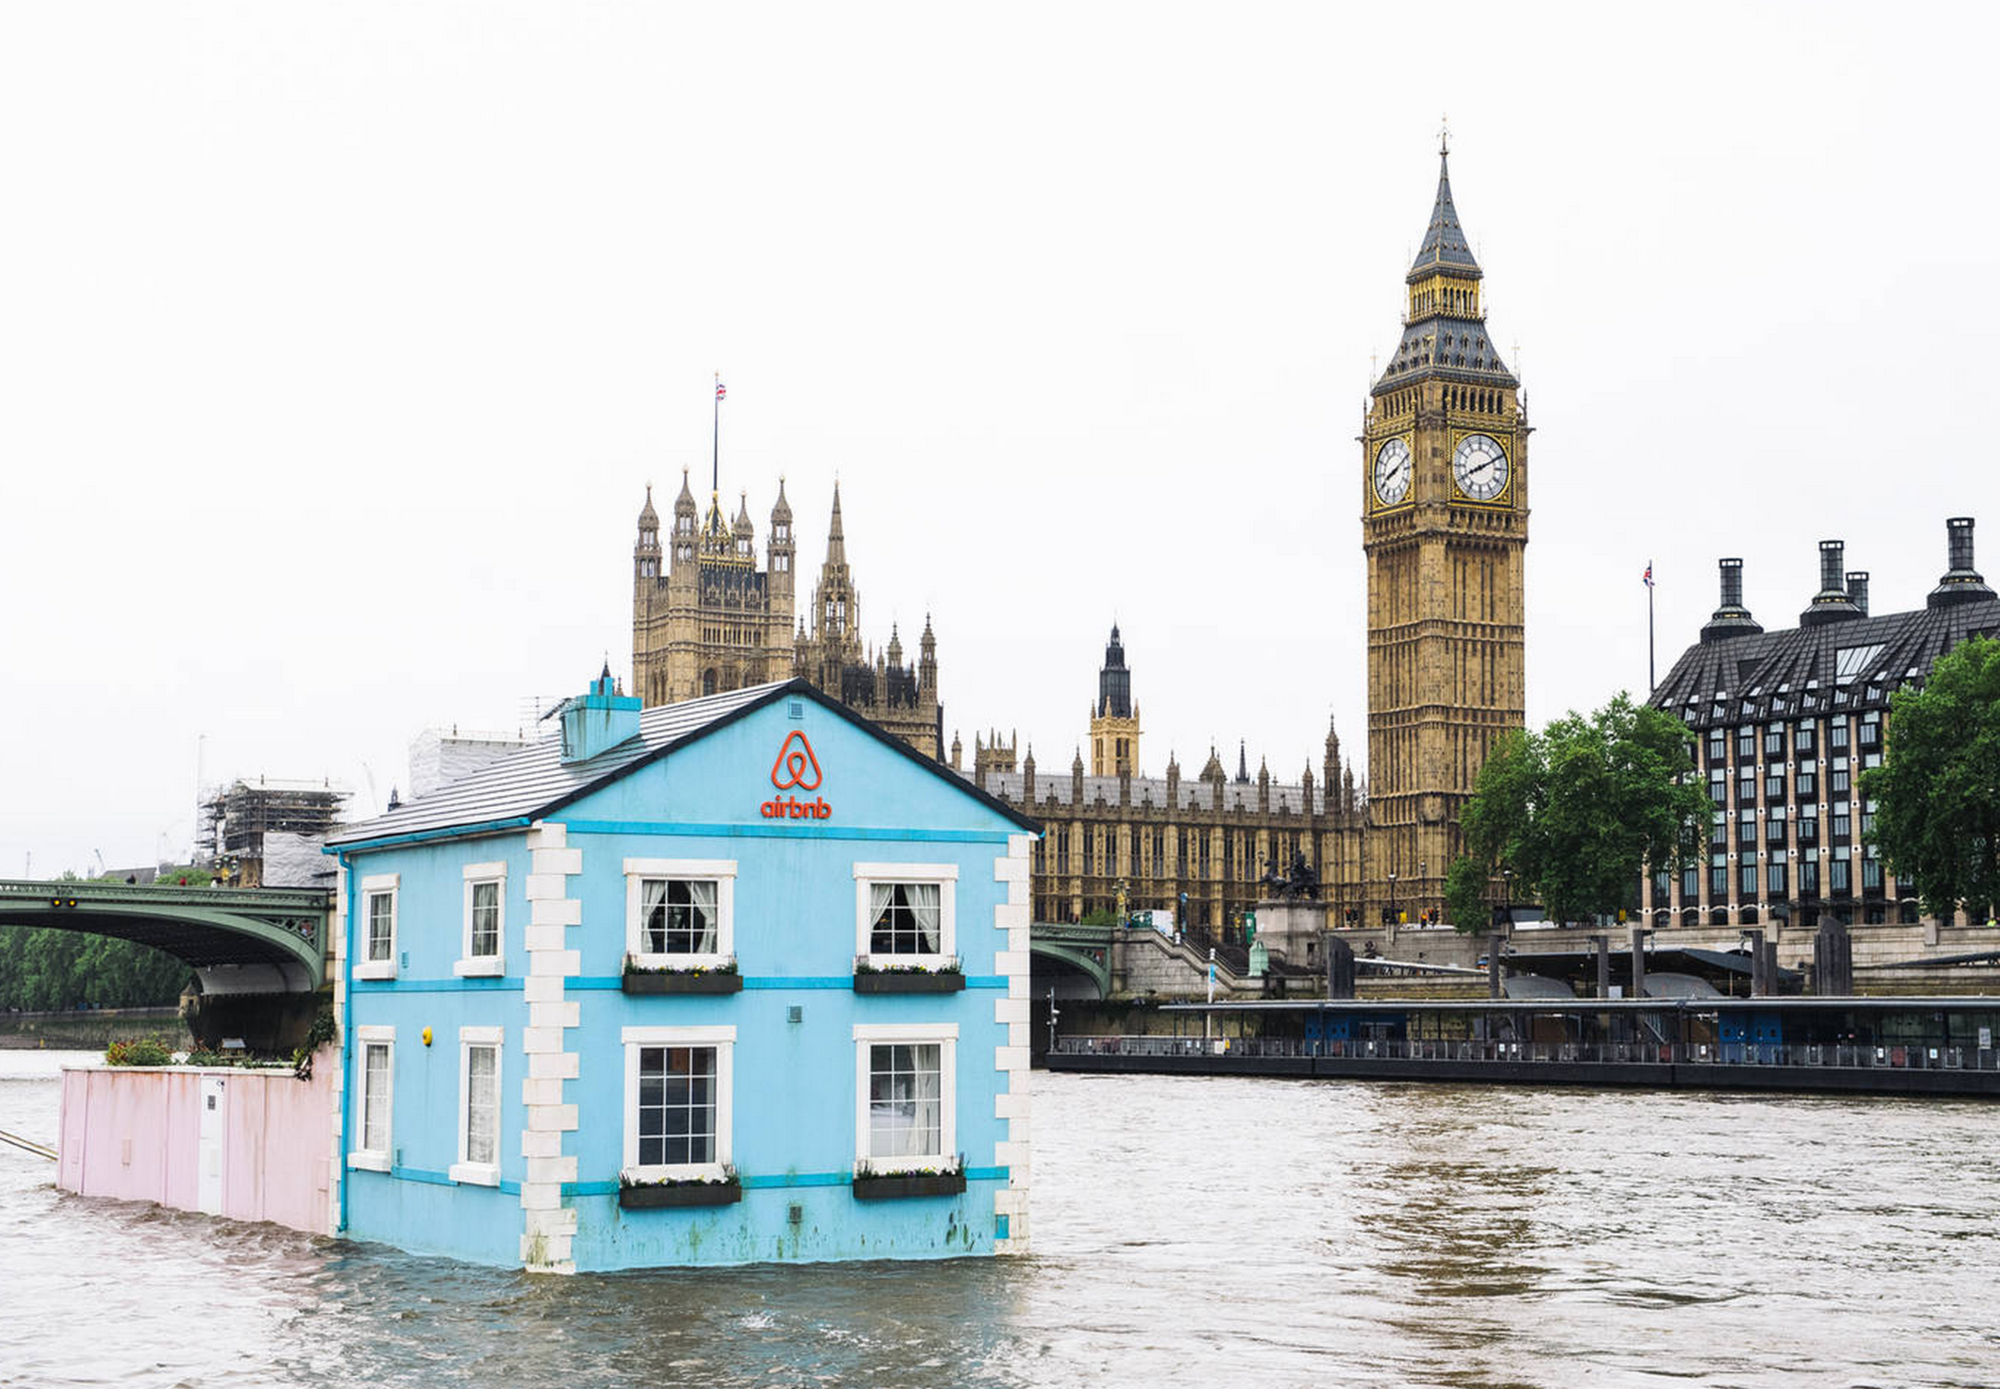 Stay In Airbnb's Floating Cottage On London's River Thames, Airbnb's Floating House on the River Thames. Image Courtesy of Airbnb